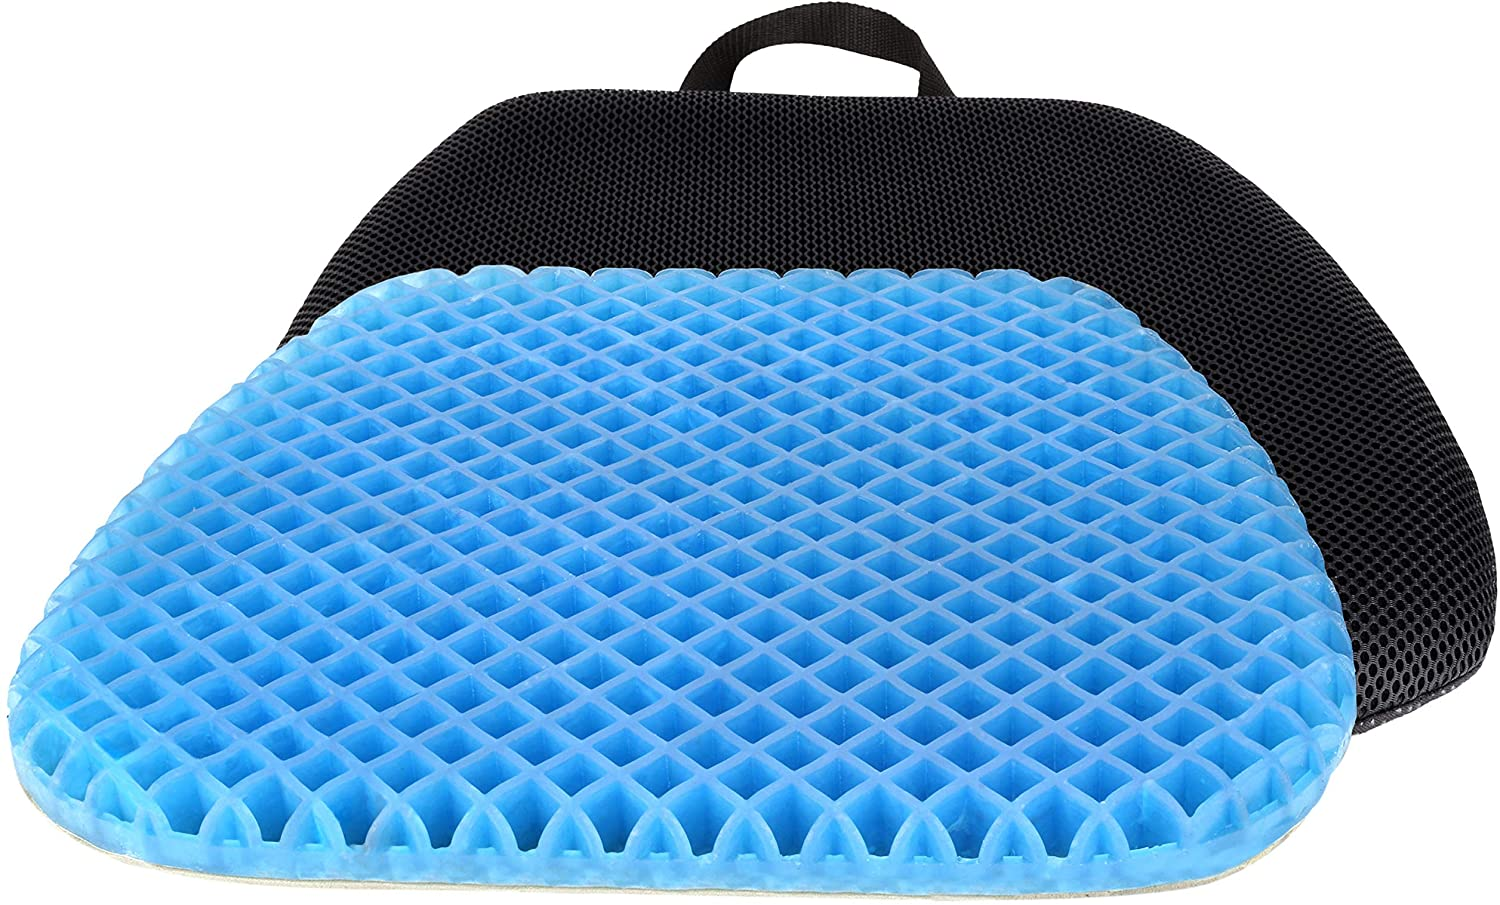 FOMI Premium All Gel Orthopedic Seat Cushion Pad for Car, Office Chair, Wheelchair, or Home. Pressure Sore Relief. Ultimate Gel Comfort, Prevents Sweaty Bottom, Durable, Portable 81ce2BL2BZnjL